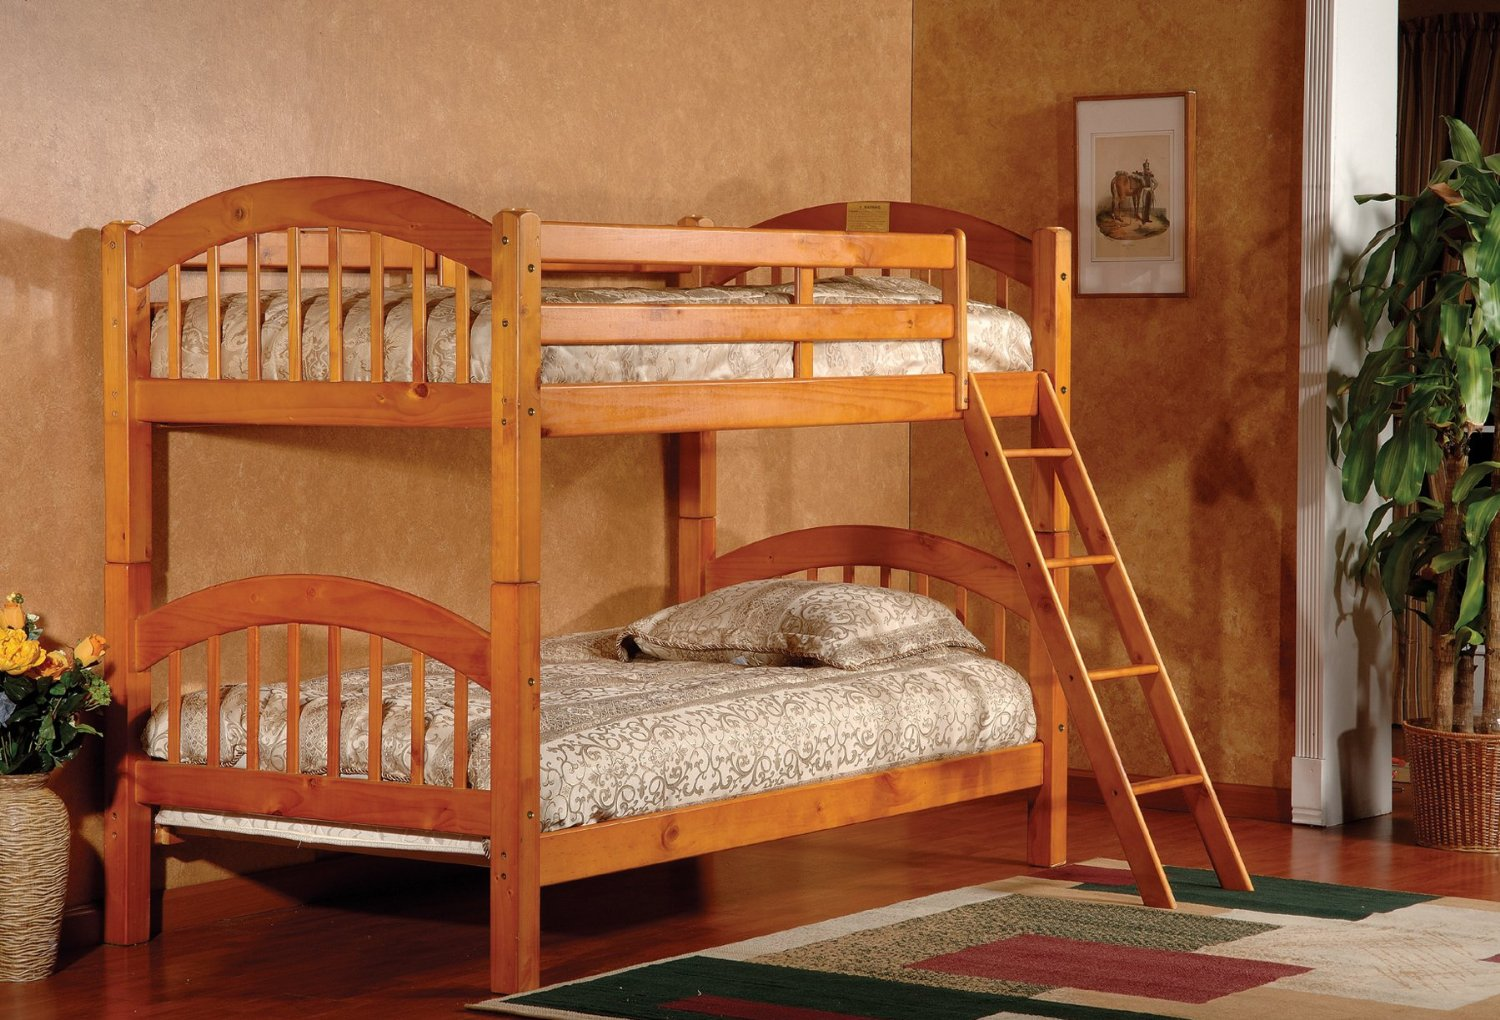 charming wood Bunk Beds With Stairs on wooden floor matched with wheat wall with picture plus checked rug for teen bedroom decor ideas